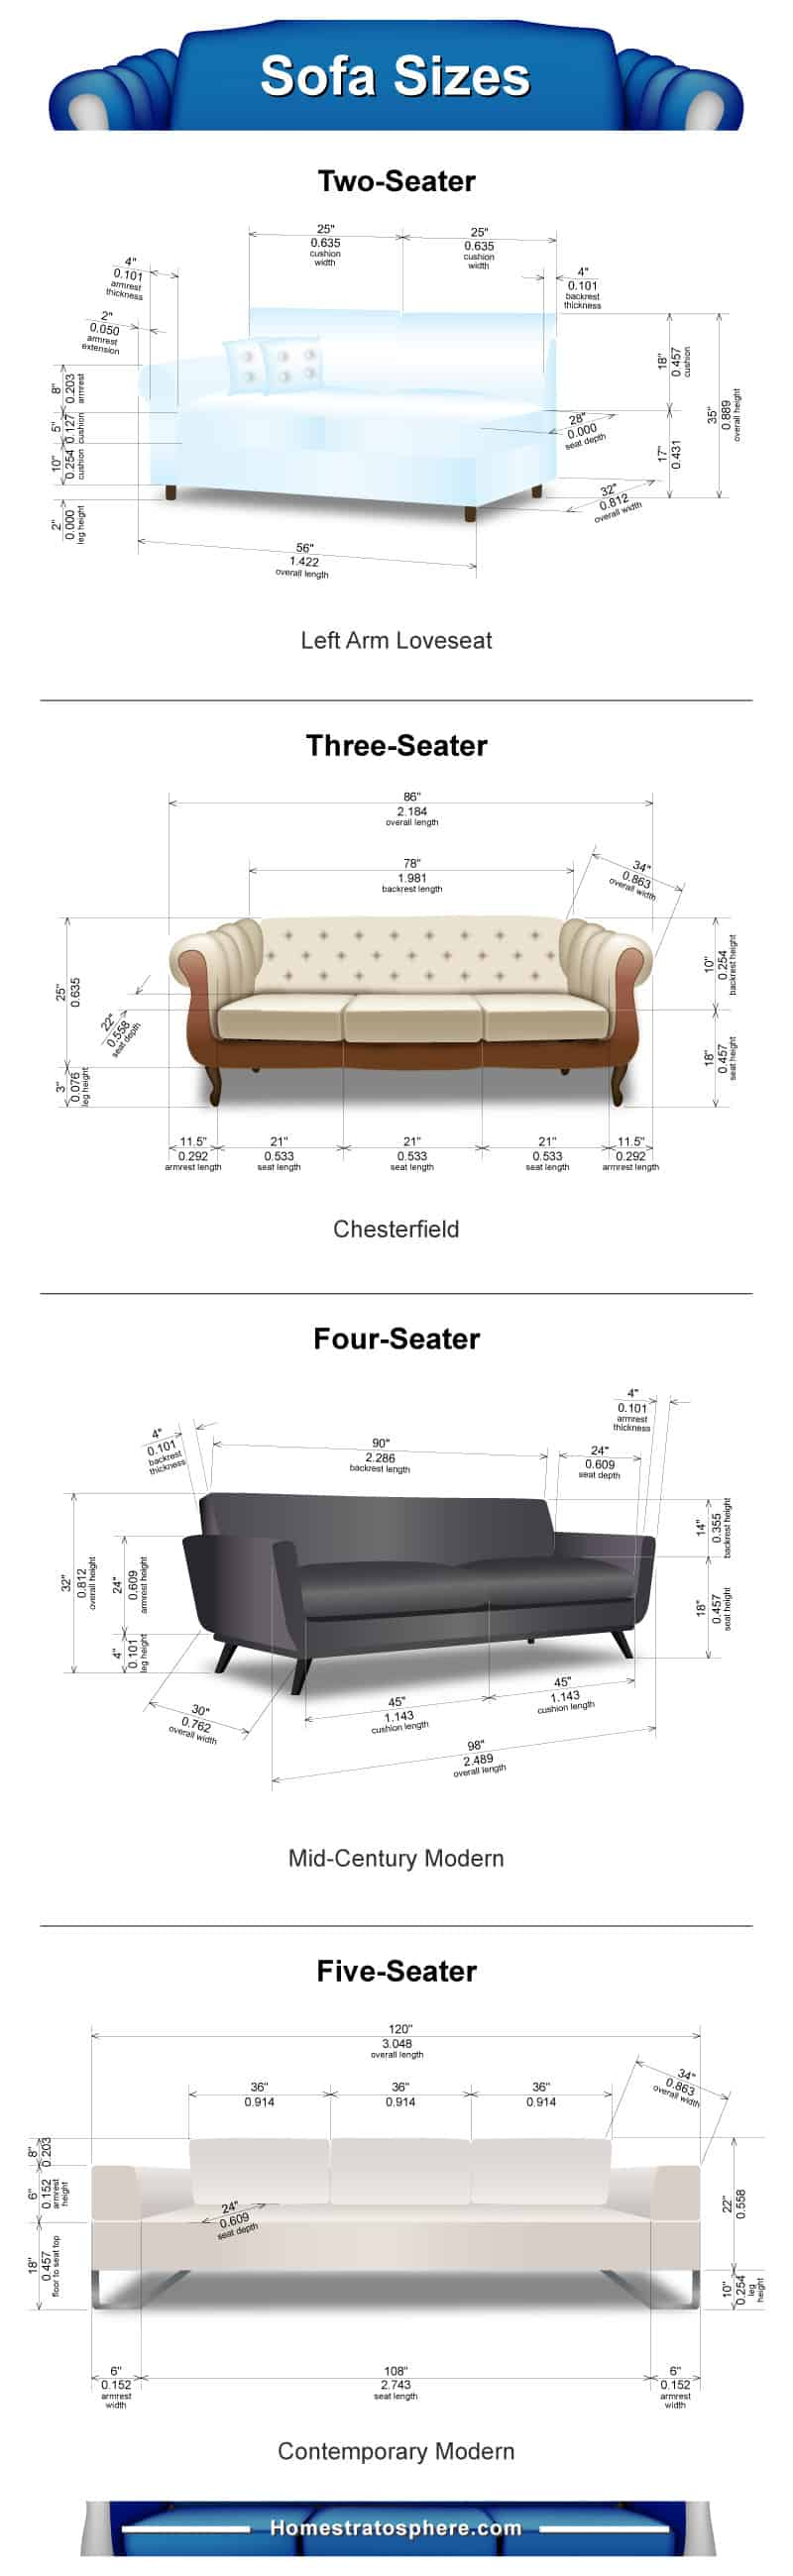 Sofa dimensions infographic